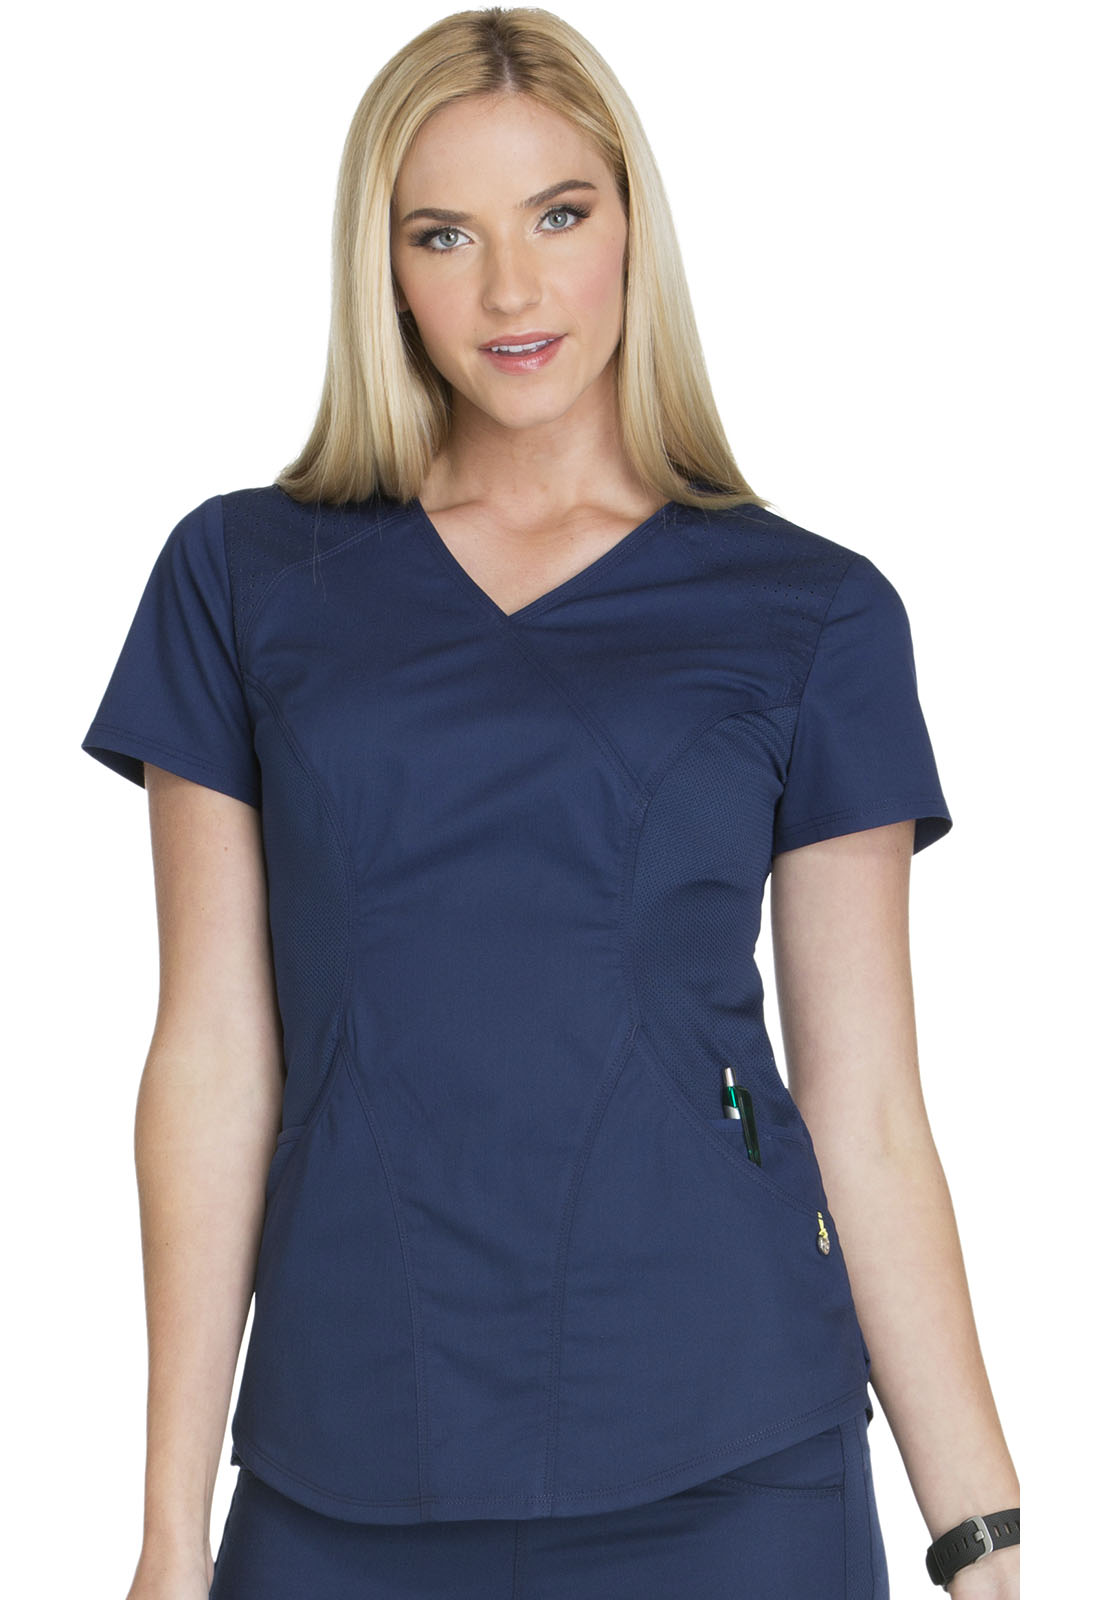 08f0dac95ed Luxe Sport Mock Wrap Top in Navy CK603-NAVV from Med Plus Uniforms ...